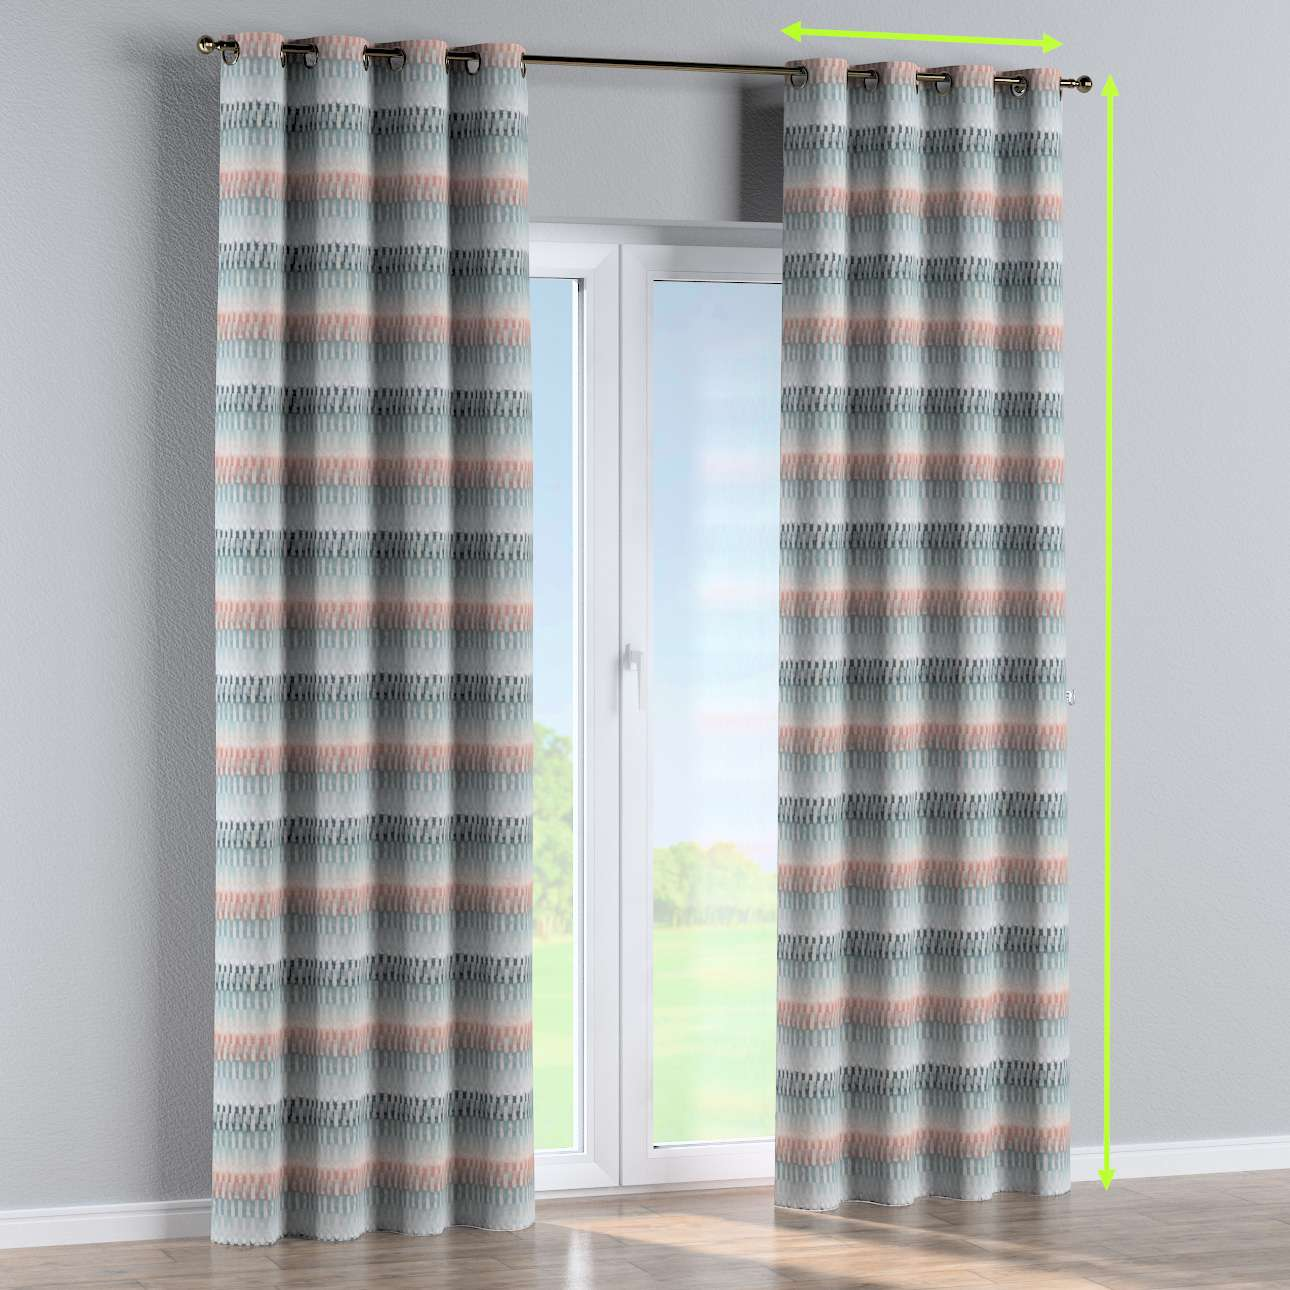 Eyelet curtain in collection SALE, fabric: 142-51